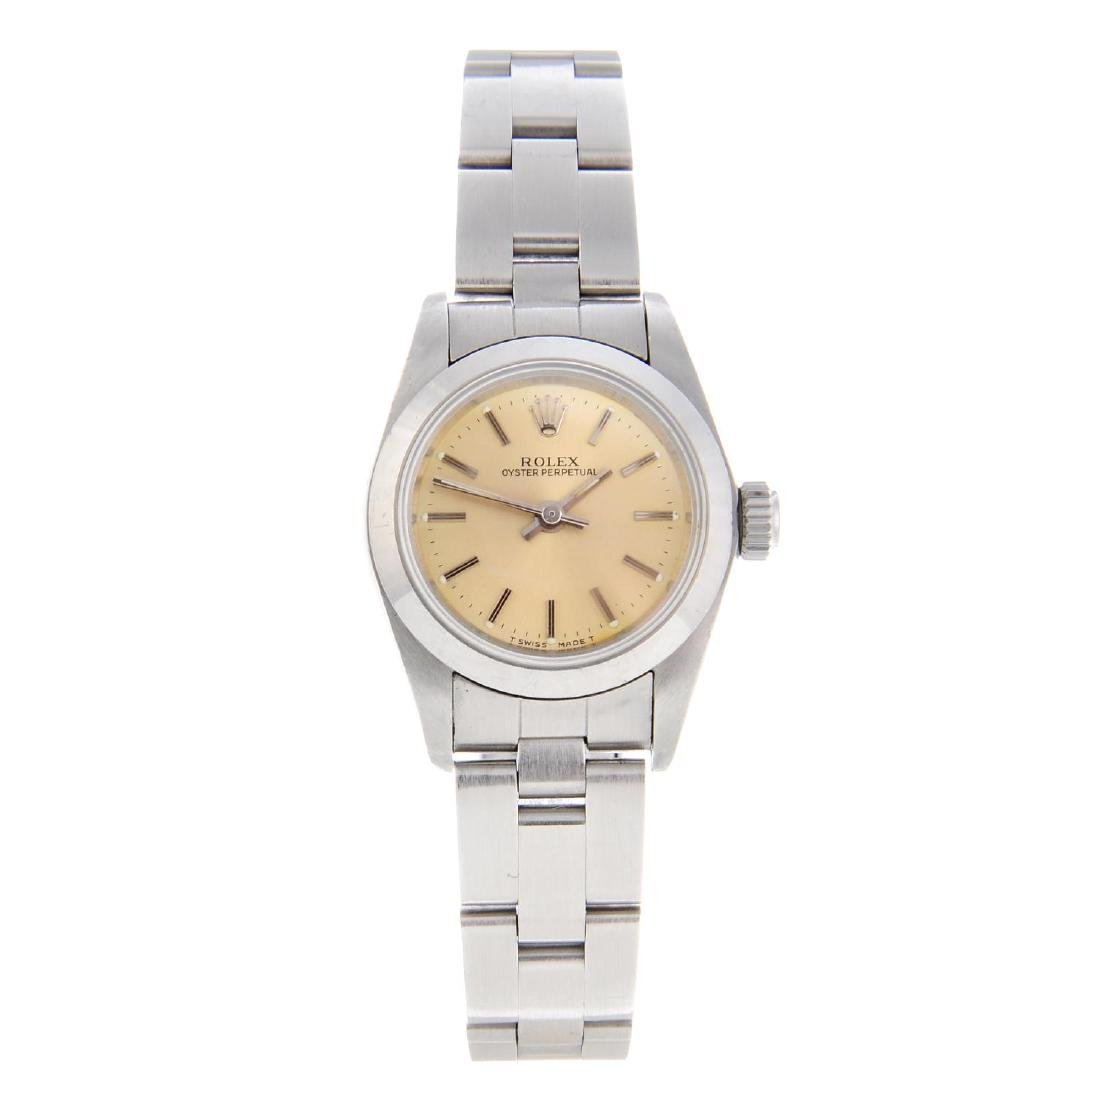 (53833) ROLEX - a lady's Oyster Perpetual bracelet